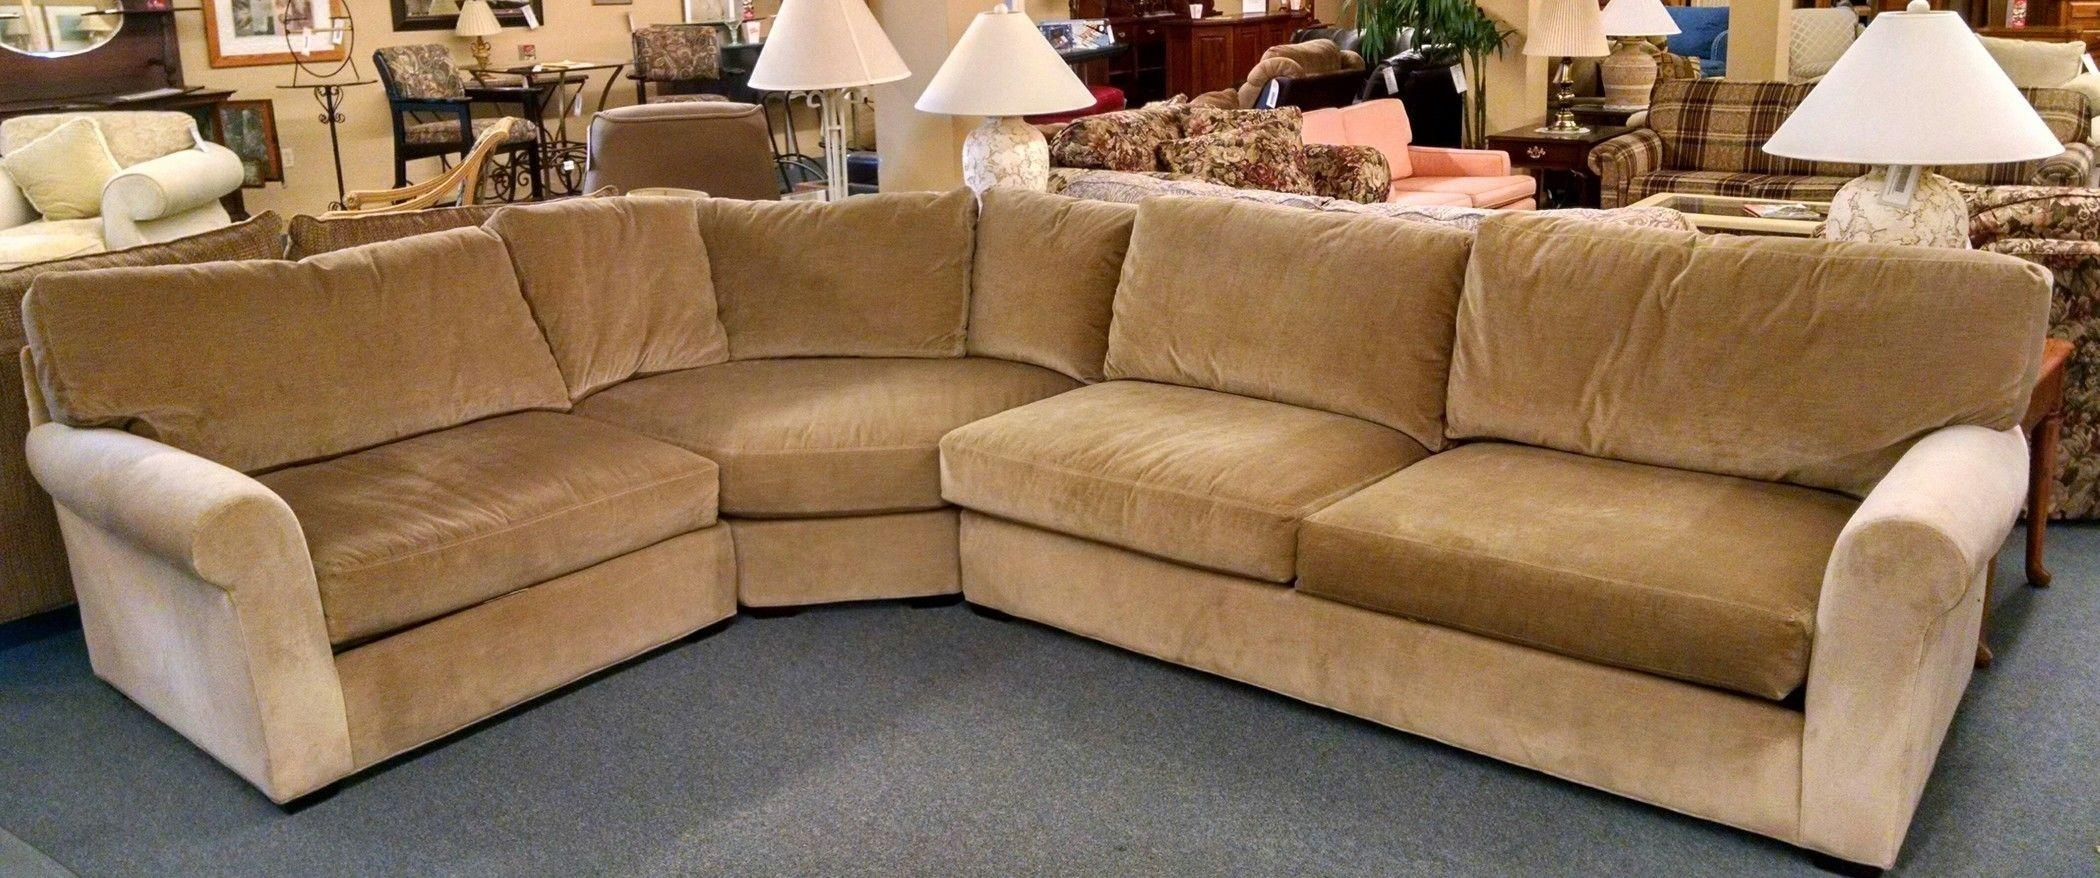 Lee Industries Sectional Sofa | Delmarva Furniture Consignment Intended For Lee Industries Sectional Sofa (Image 15 of 20)